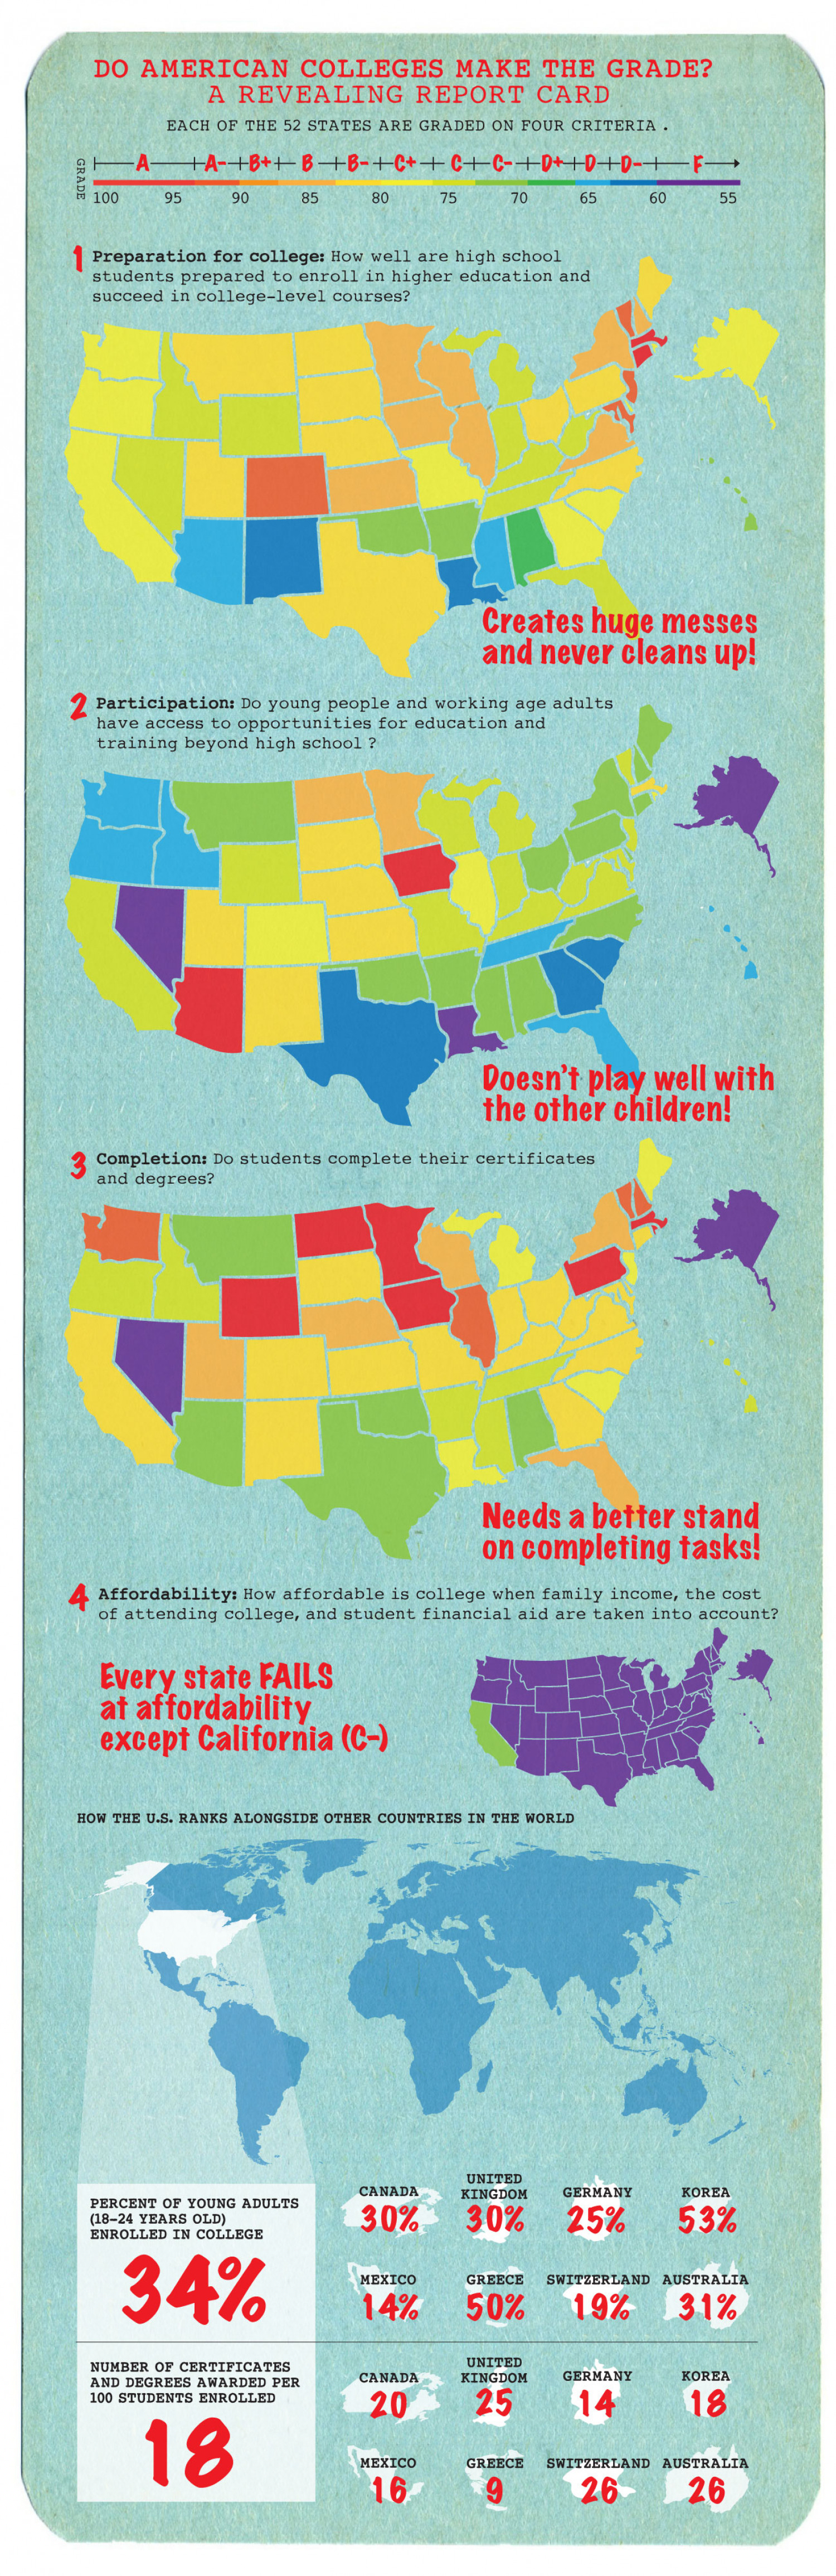 American Colleges - A Revealing Report Card Infographic